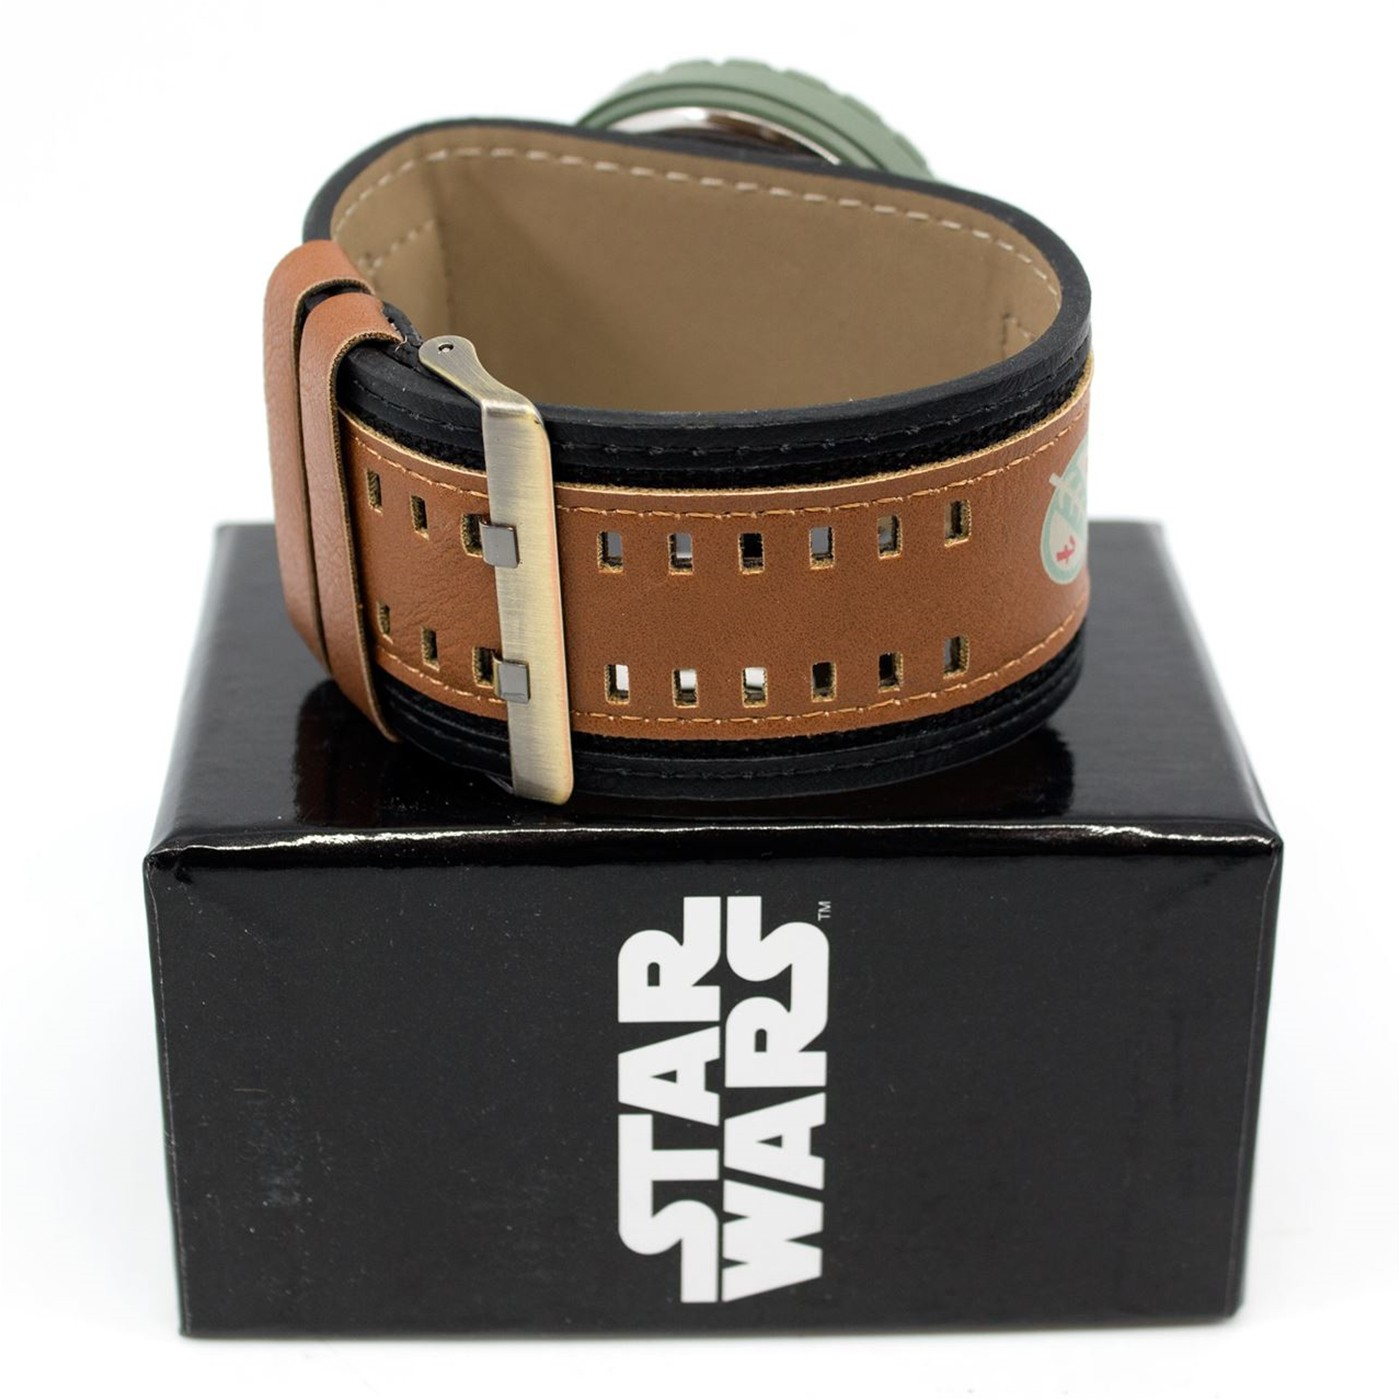 Star Wars Boba Fett Mandalorian Watch with Dual Fasten Adjustable Strap